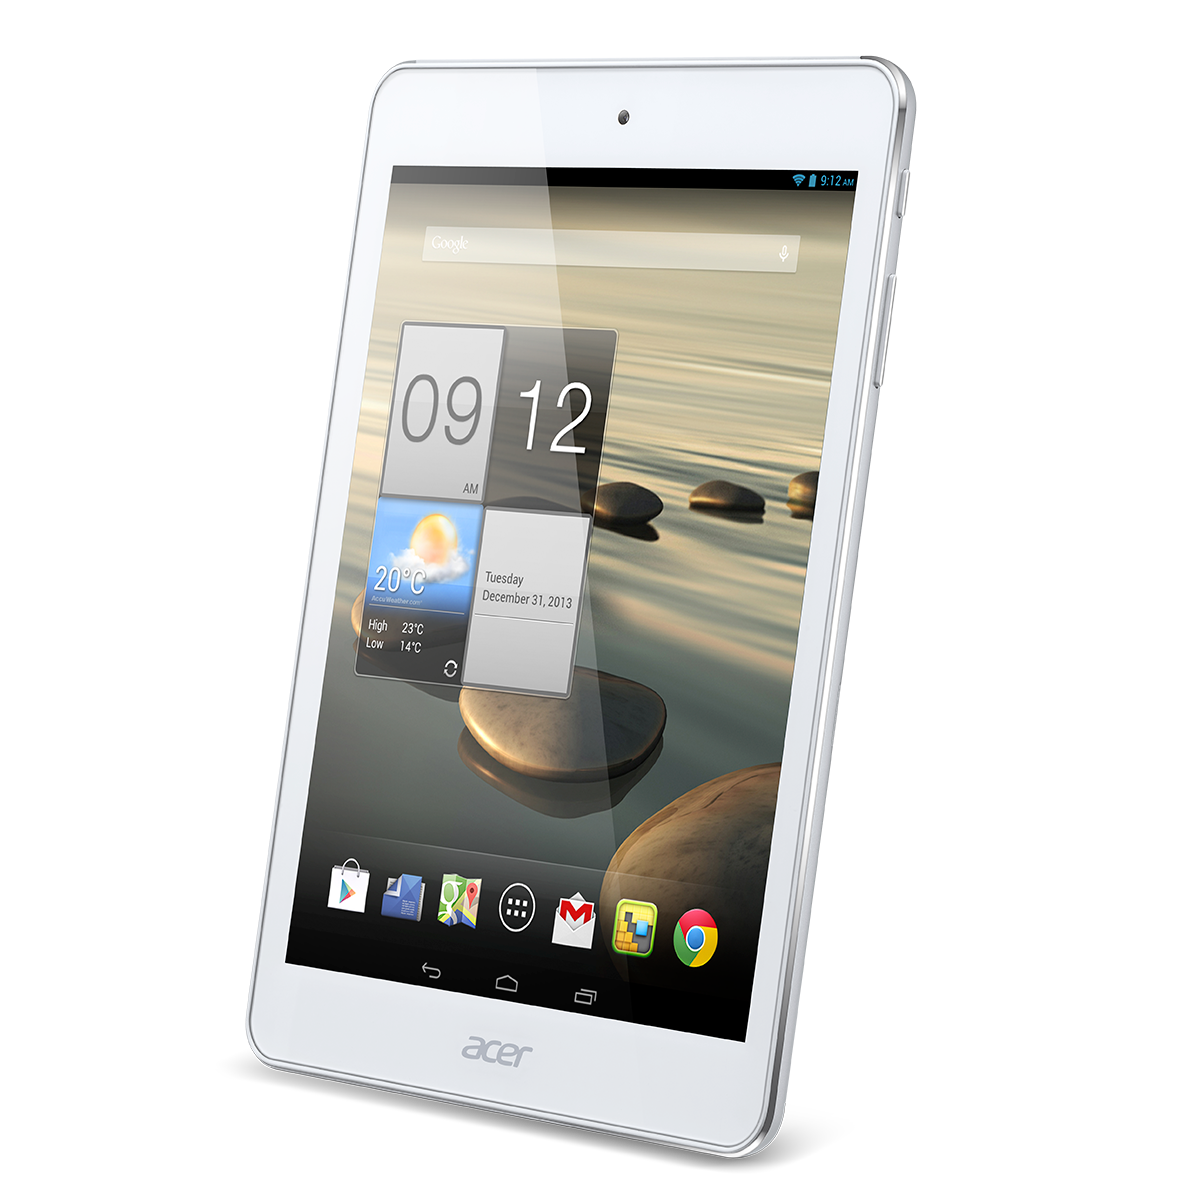 acer iconia a1 830 review